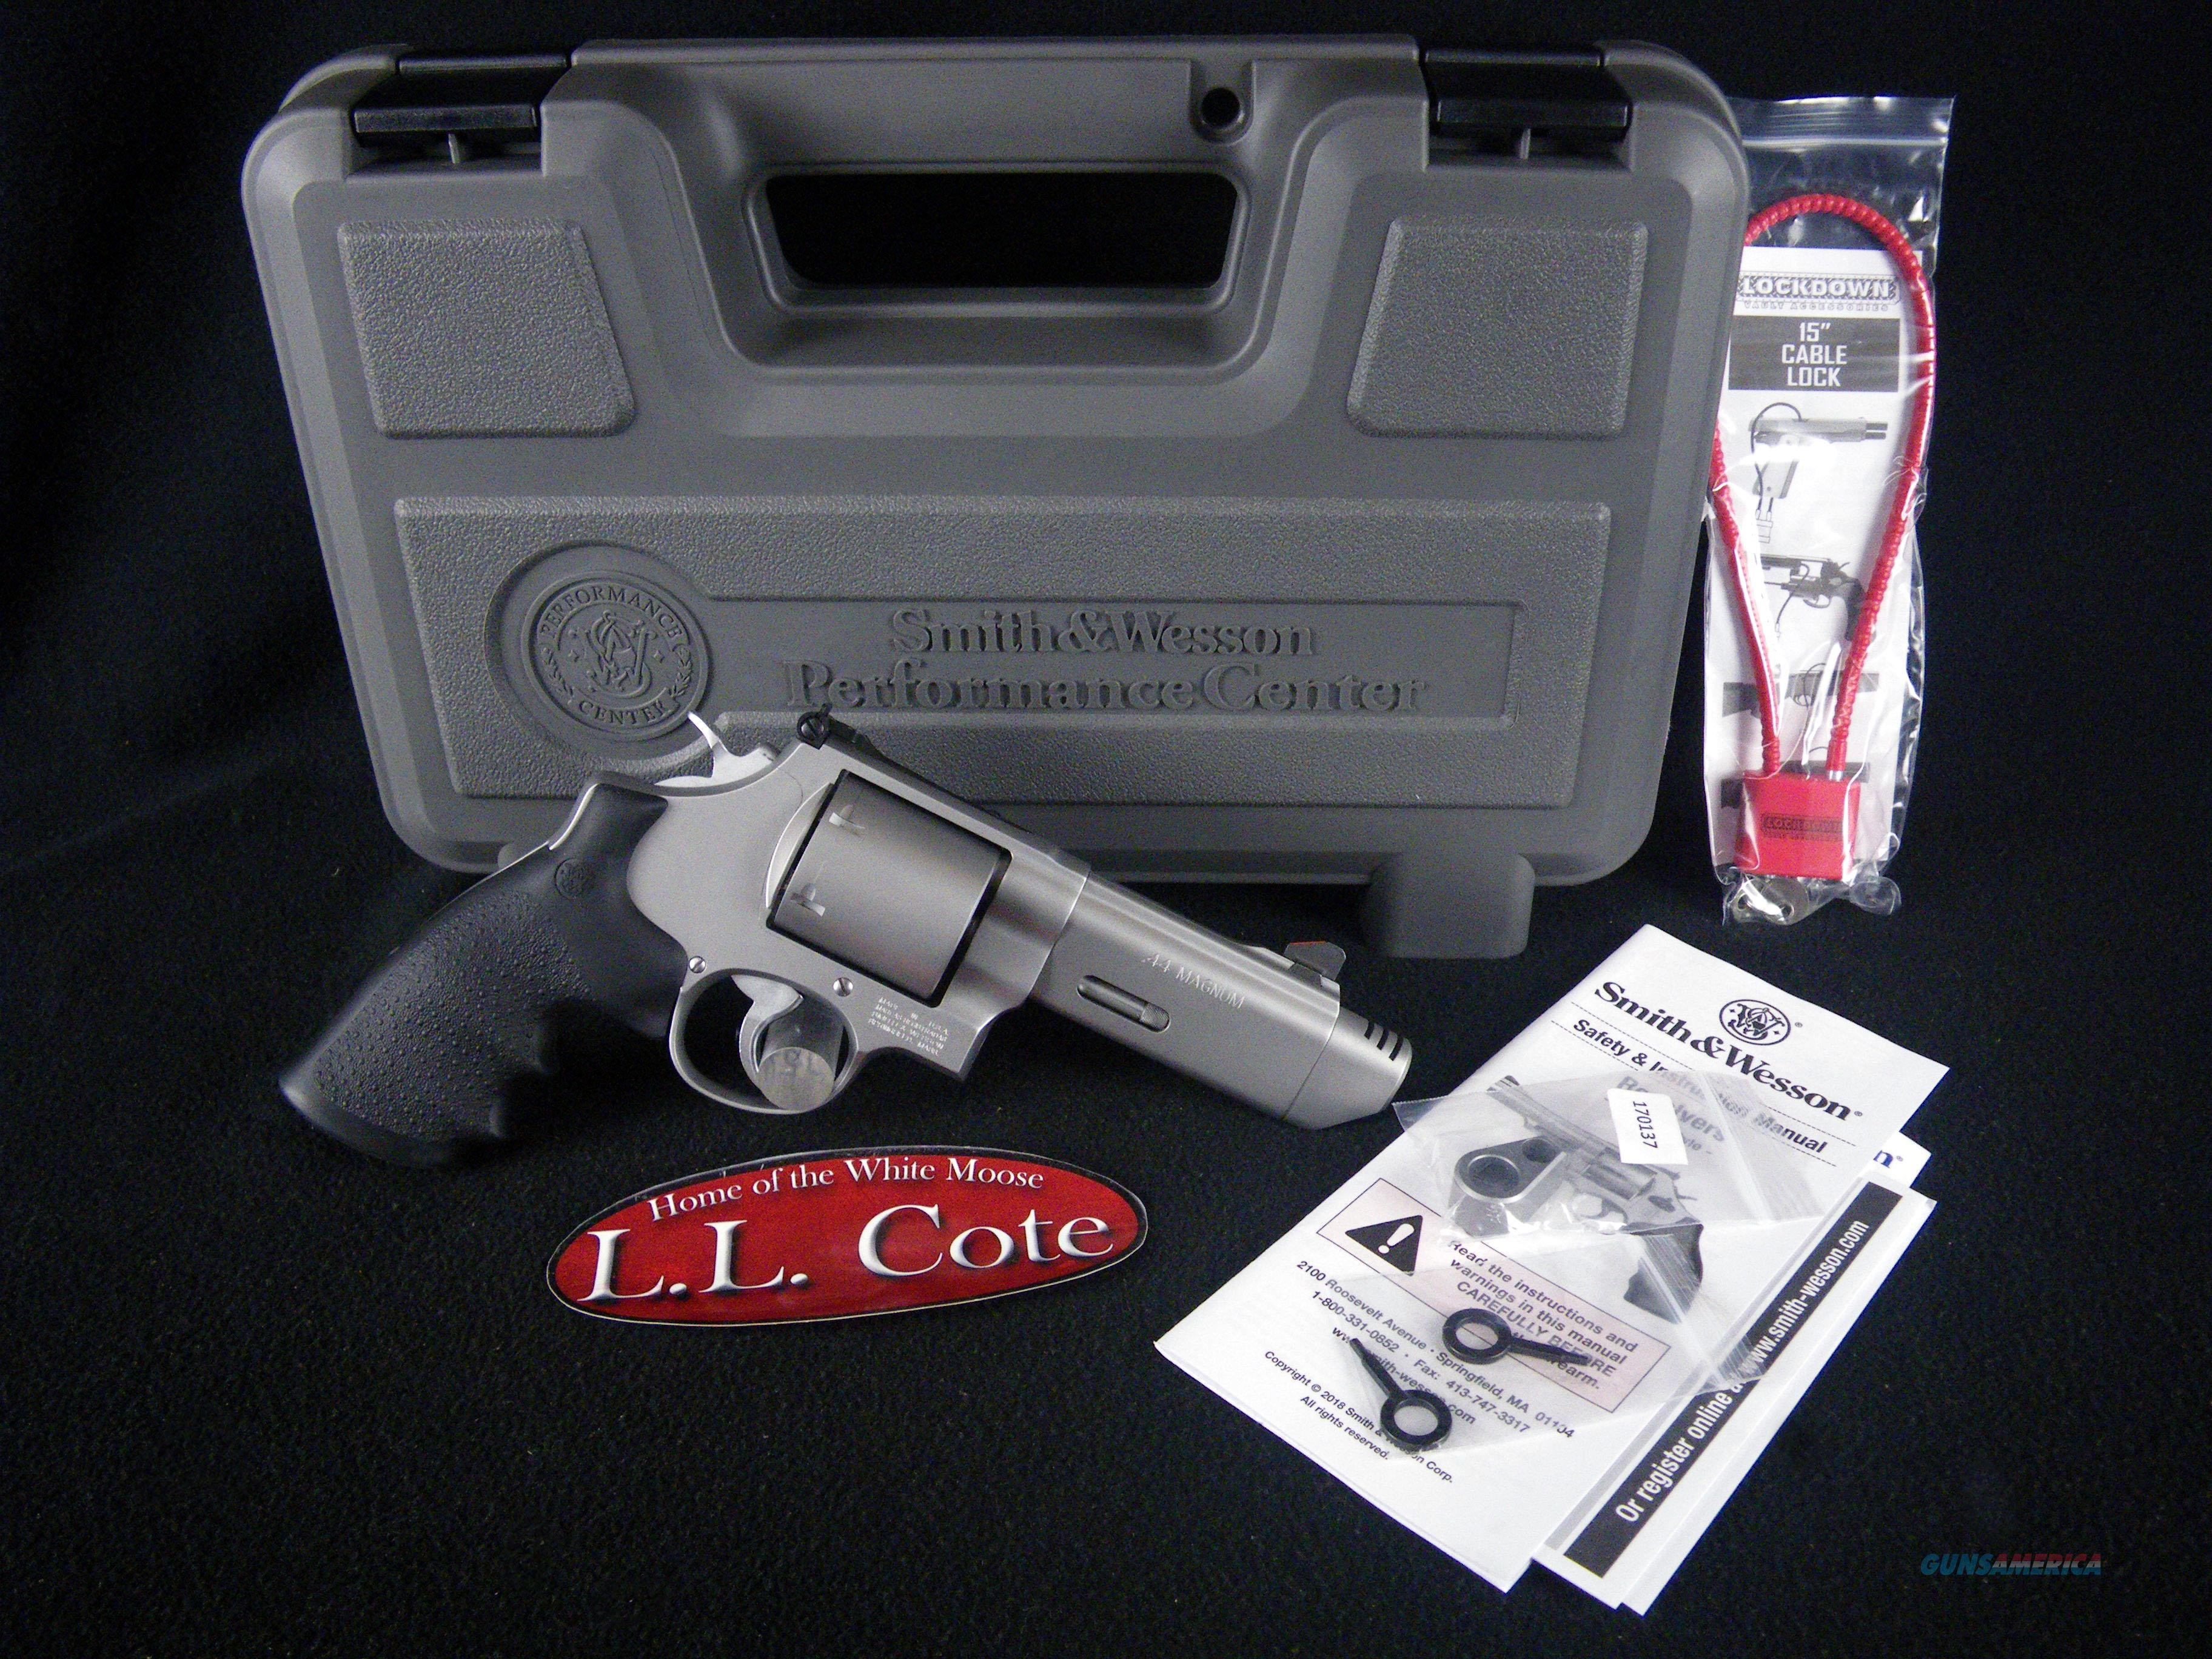 "Smith & Wesson Perf Cent Model 629 V-Comp 44mag 4"" NEW 170137  Guns > Pistols > Smith & Wesson Revolvers > Med. Frame ( K/L )"